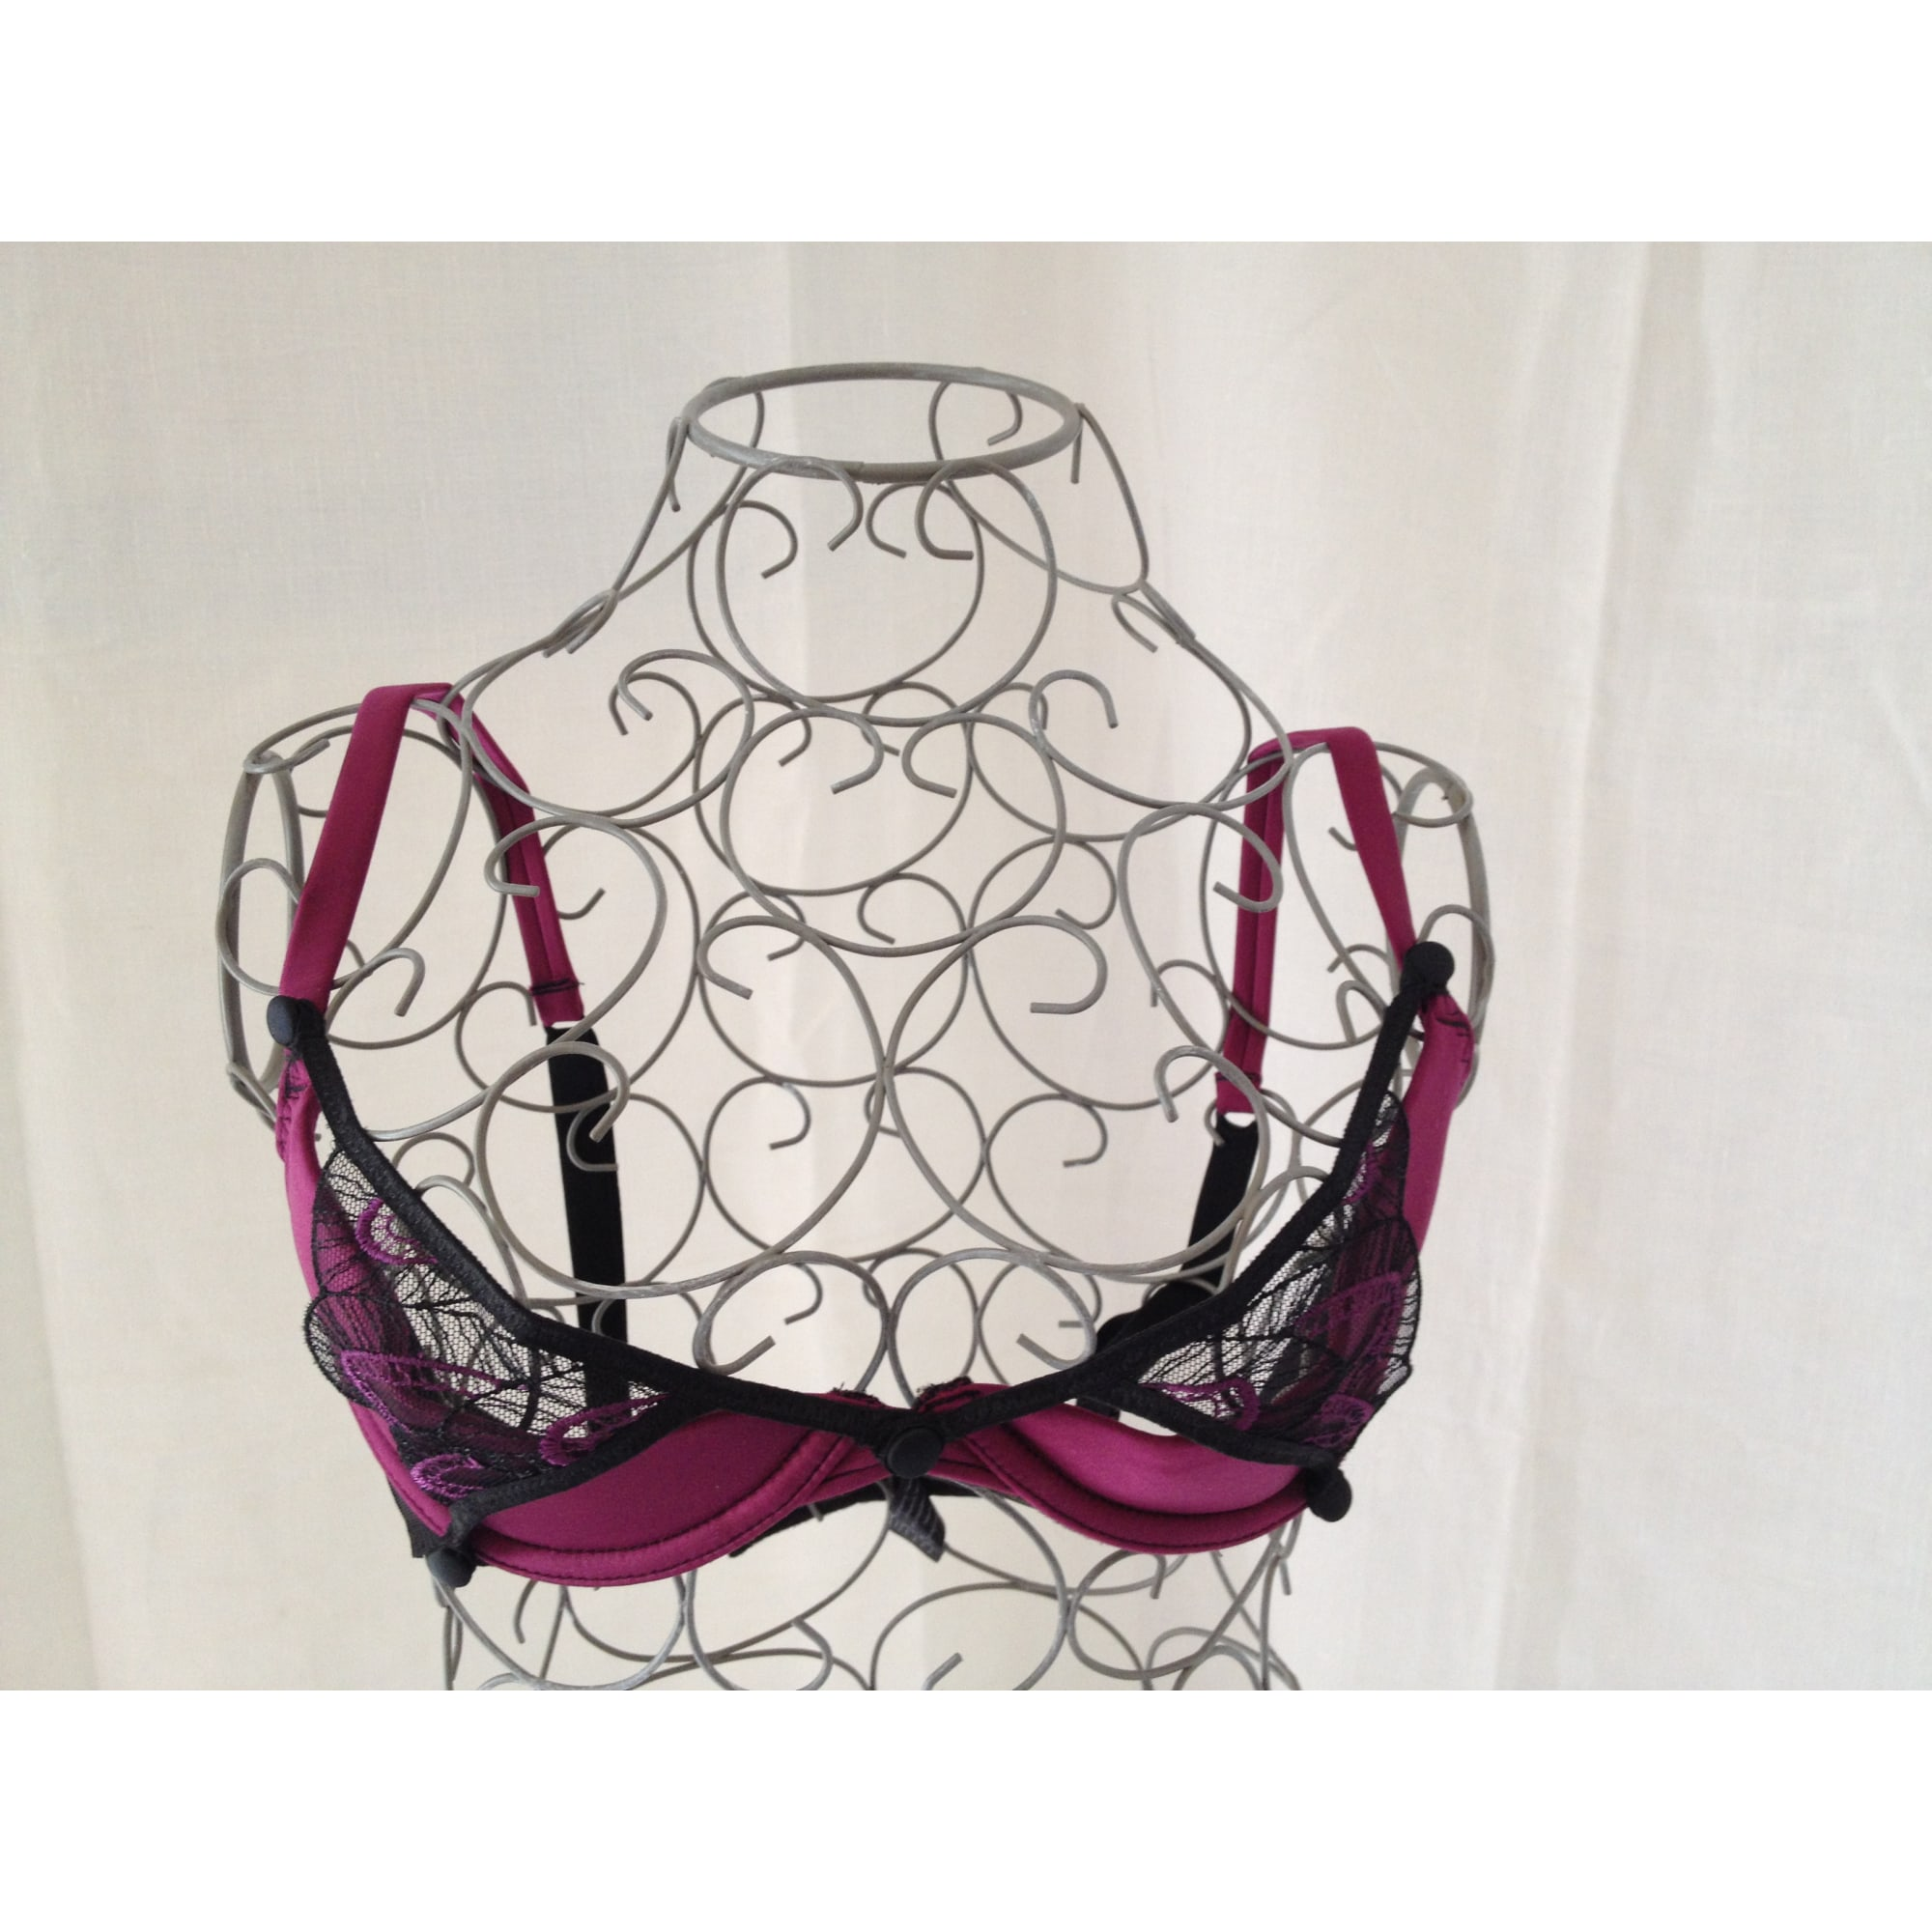 Soutien gorge push up IMPLICITE Rouge, bordeaux